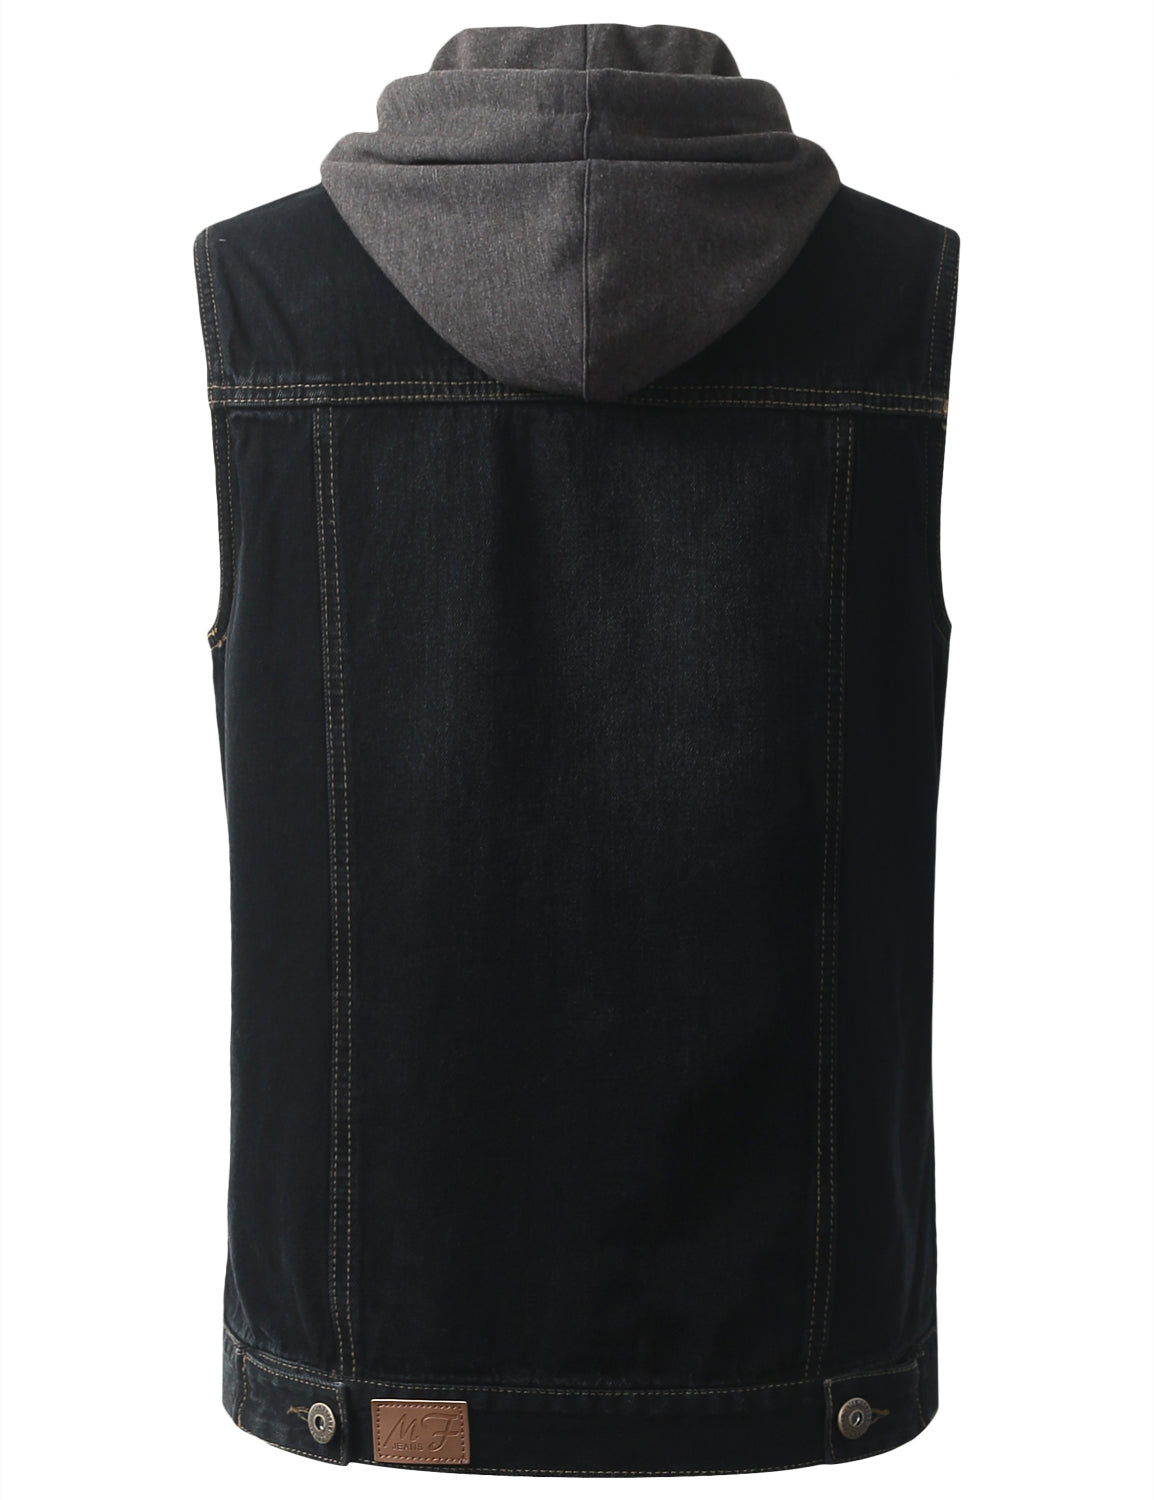 BLACK Hooded Denim Vest Jacket